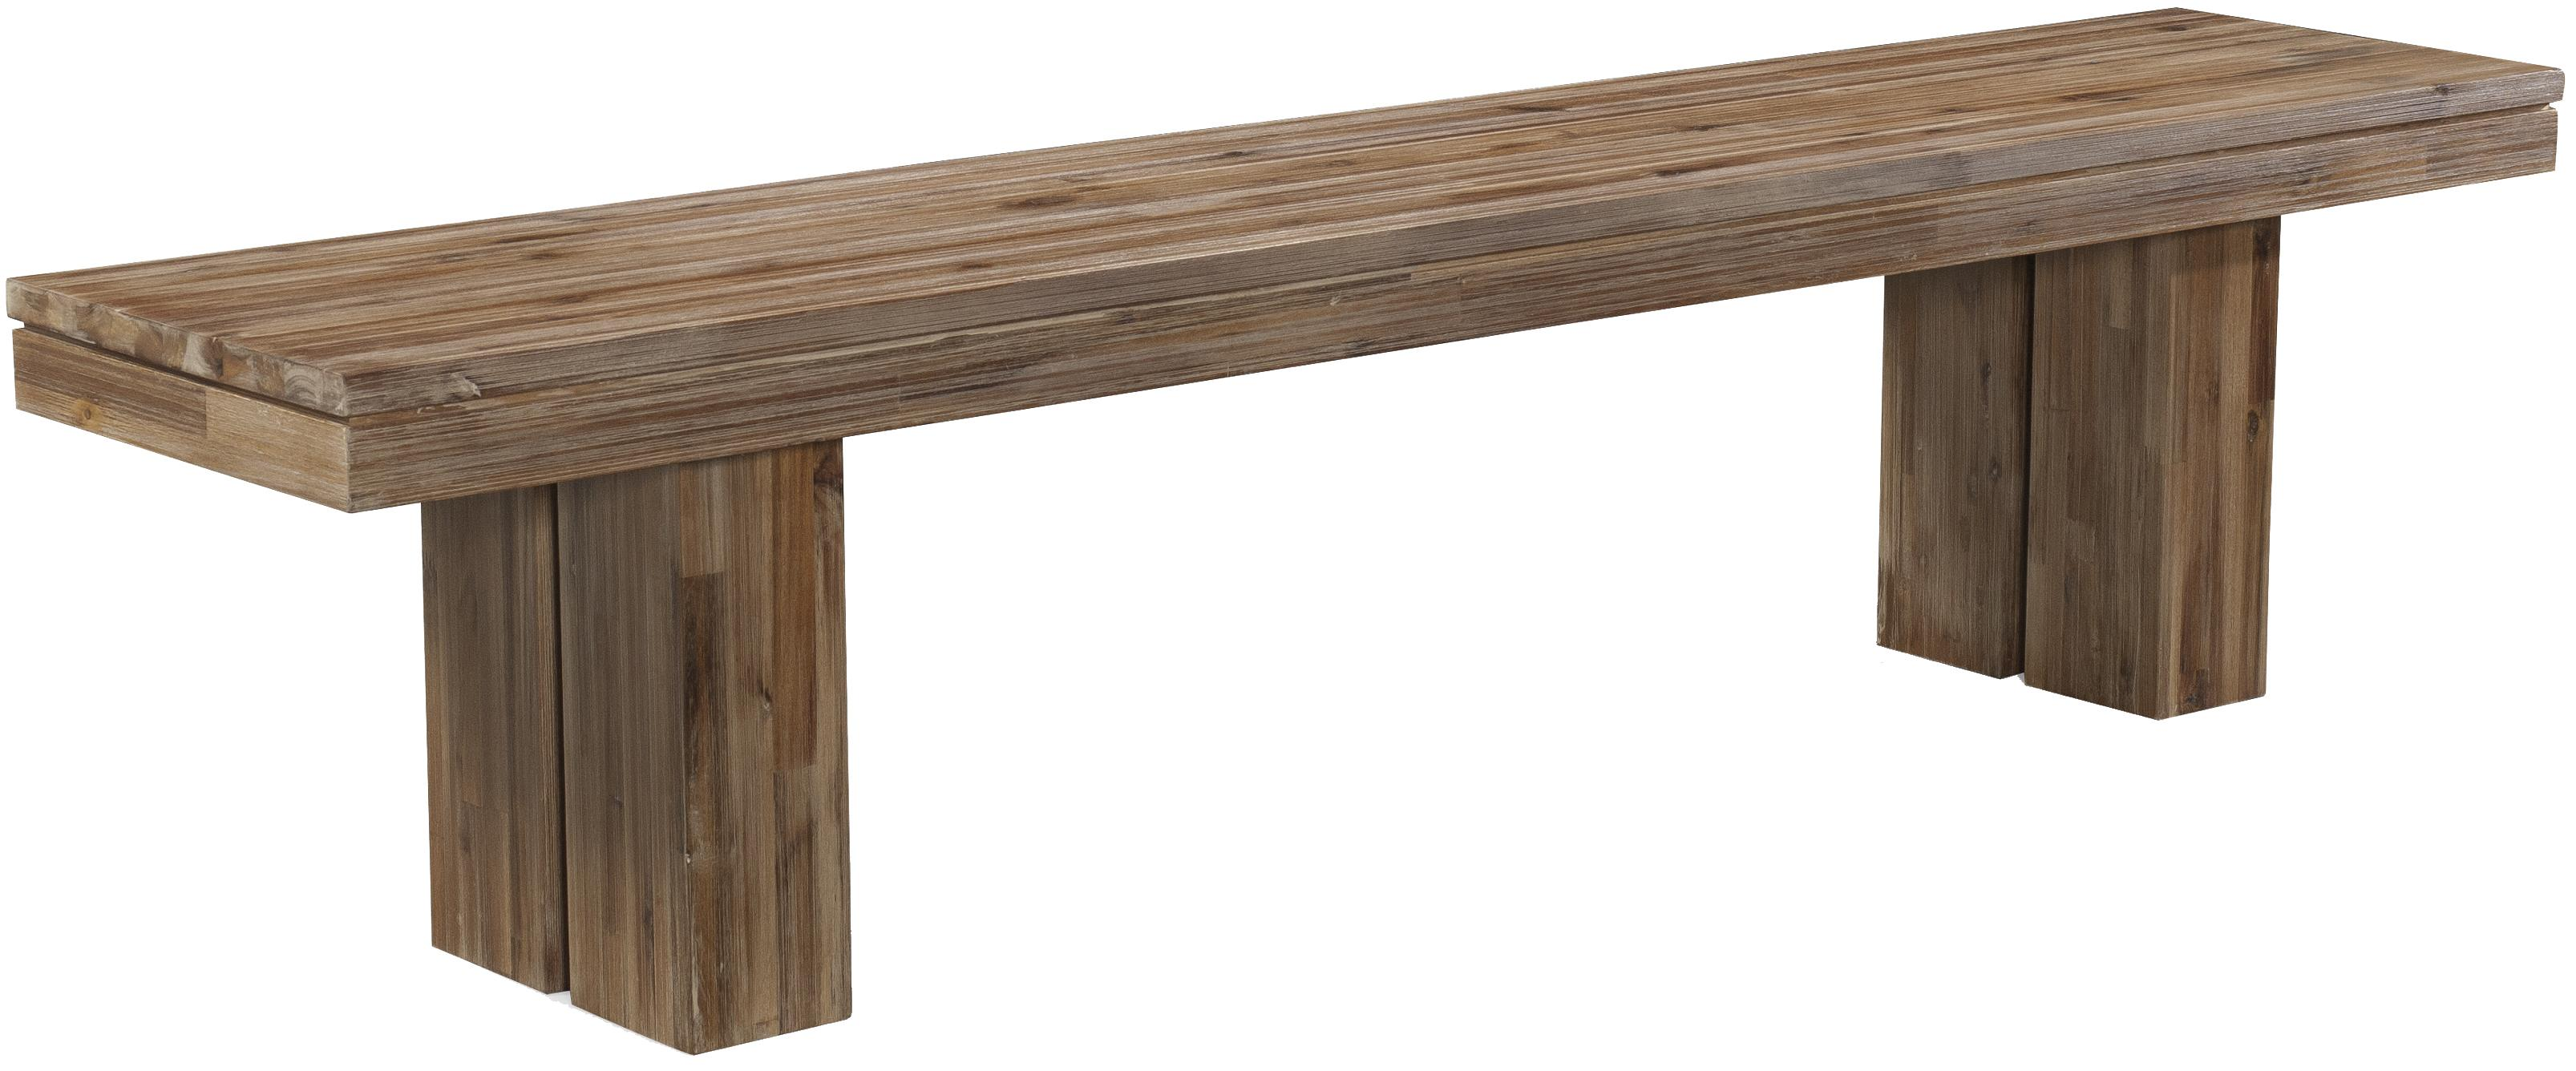 Waverly Acacia Wood Modern Rustic Dining Bench With